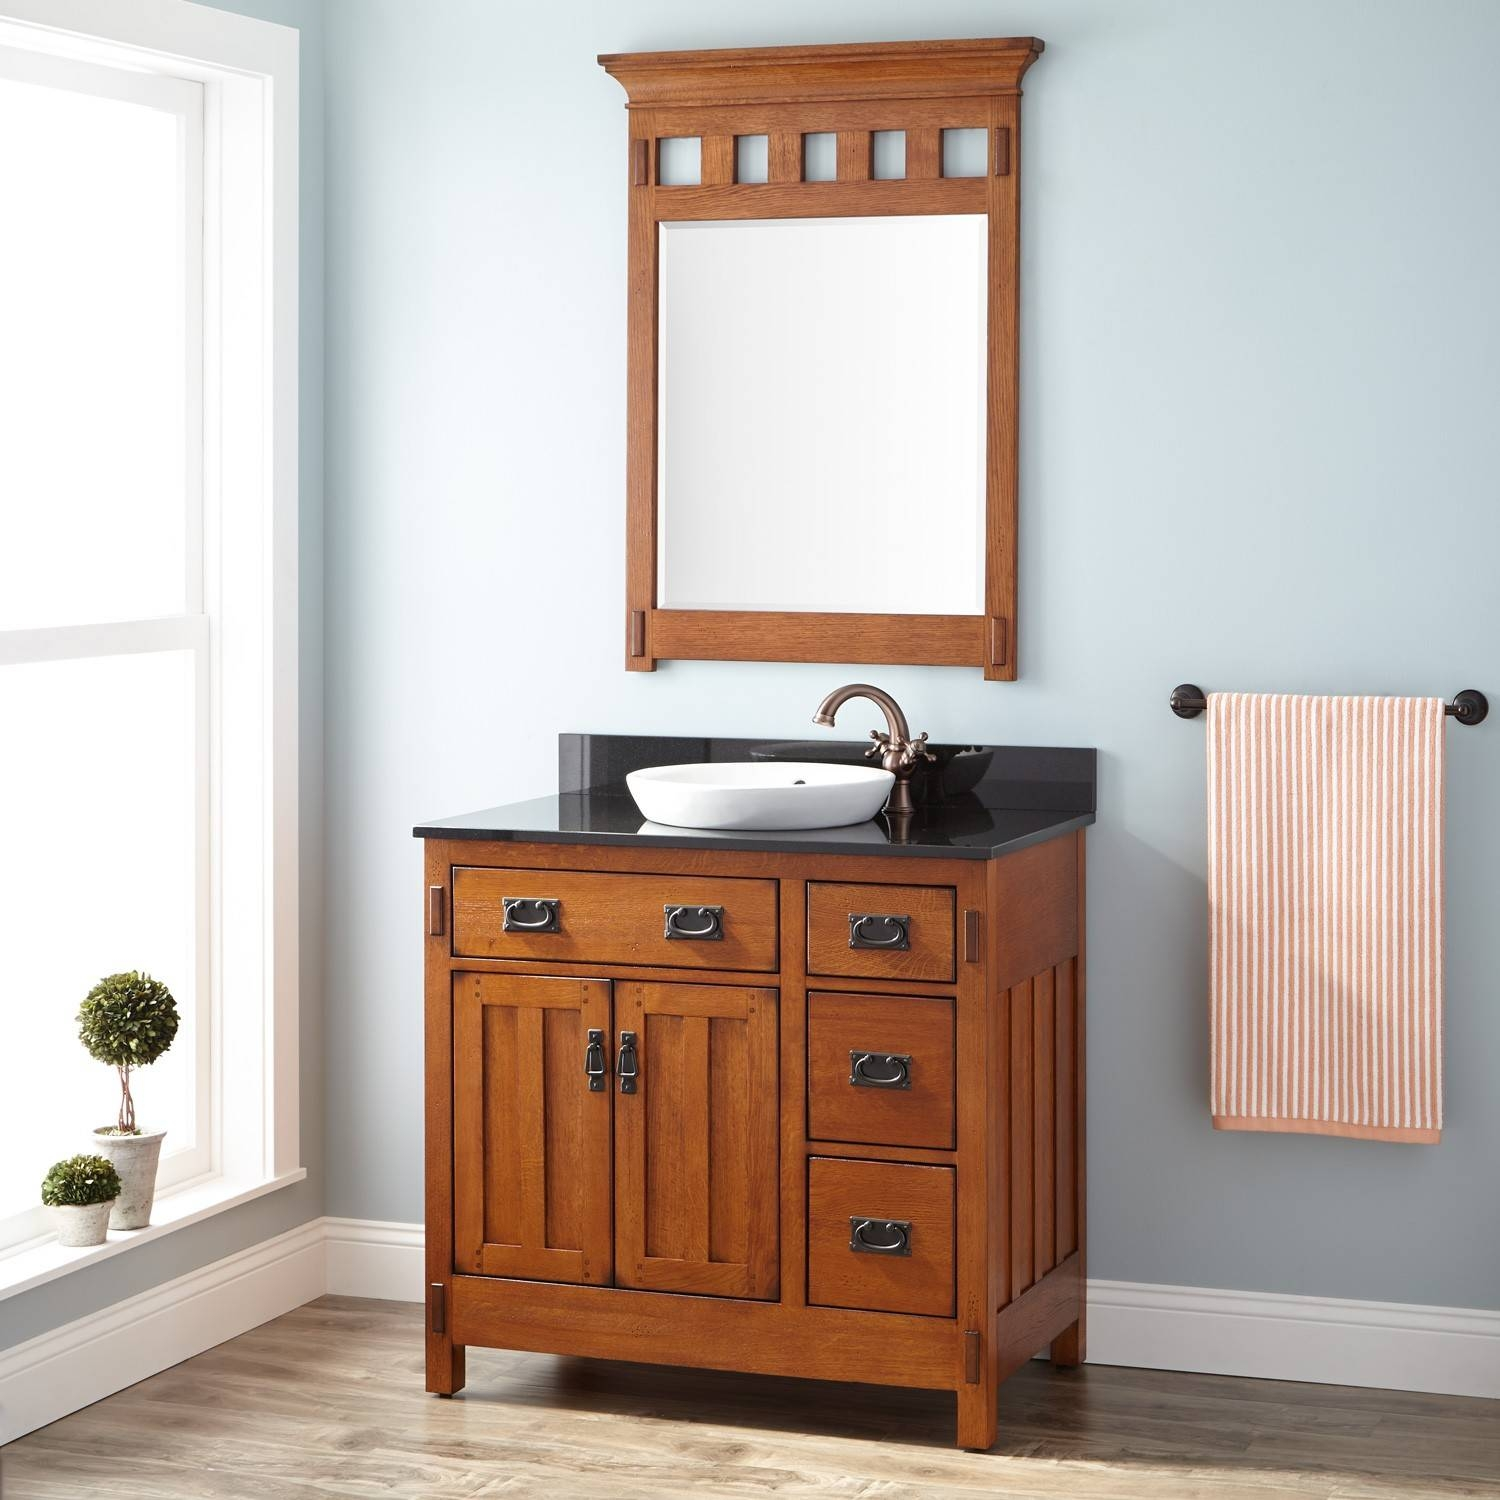 "36"" American Craftsman Vanity For Semi-Recessed Sink - Rustic Oak regarding Rustic Oak Mirrors (Image 1 of 25)"